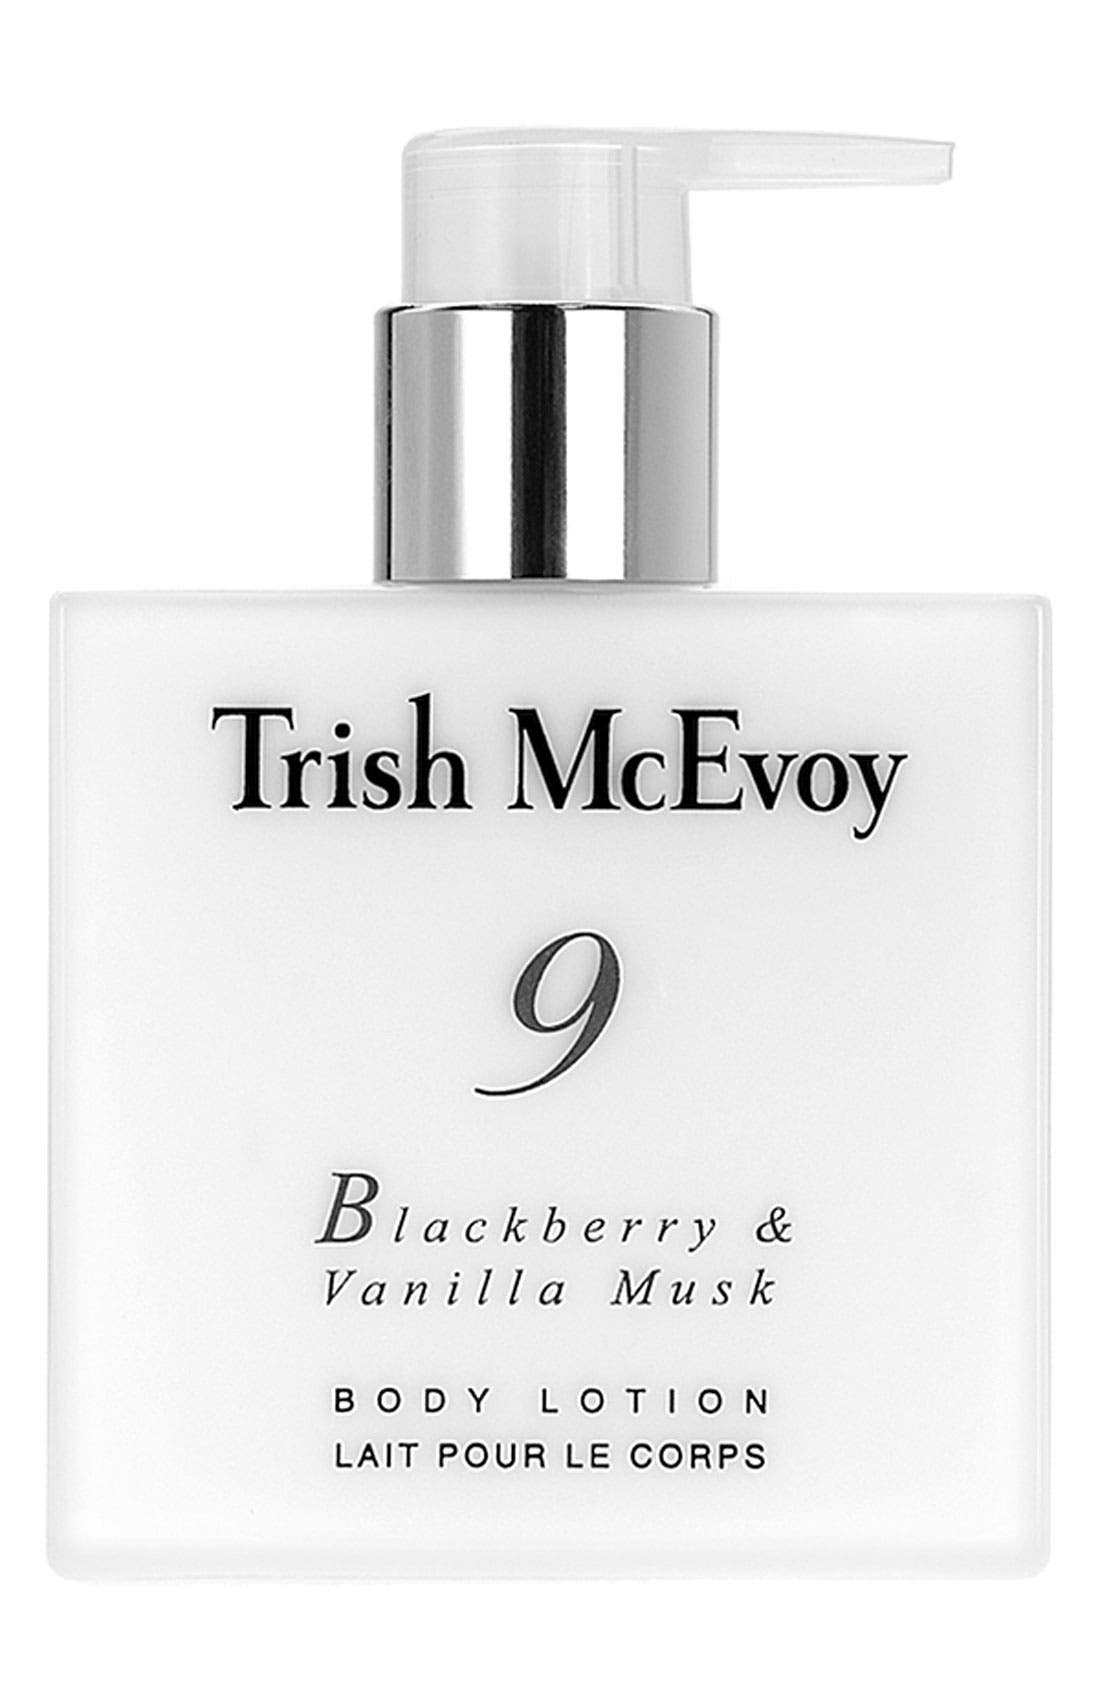 Trish McEvoy No. 9 Blackberry & Vanilla Musk Body Lotion